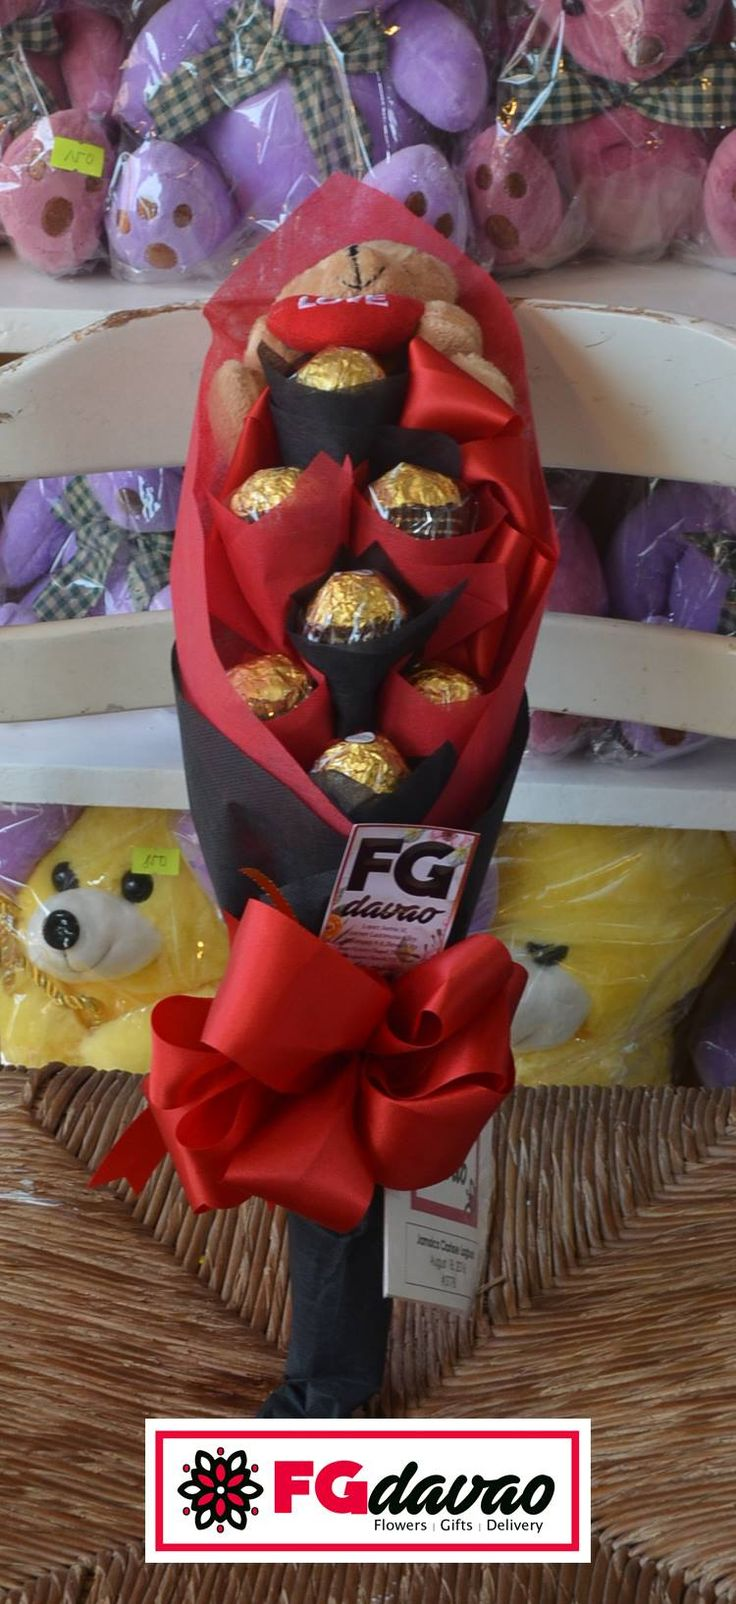 Red and Black Themed Chocolate Bouquet  Flowers Gifts Delivery www.FGDavao.com 0998 579 5720  #chocolatebouquet #bouquetofchocolates #tinybears #cute #uniquet #gift #surprise #love #sweets #sweetgift #sweetsurprise #stuffedtoys #stuffedtoybouquet #gifts #giftshop #giftdelivery #fgdavao #ph #arts #crafts #chocolates